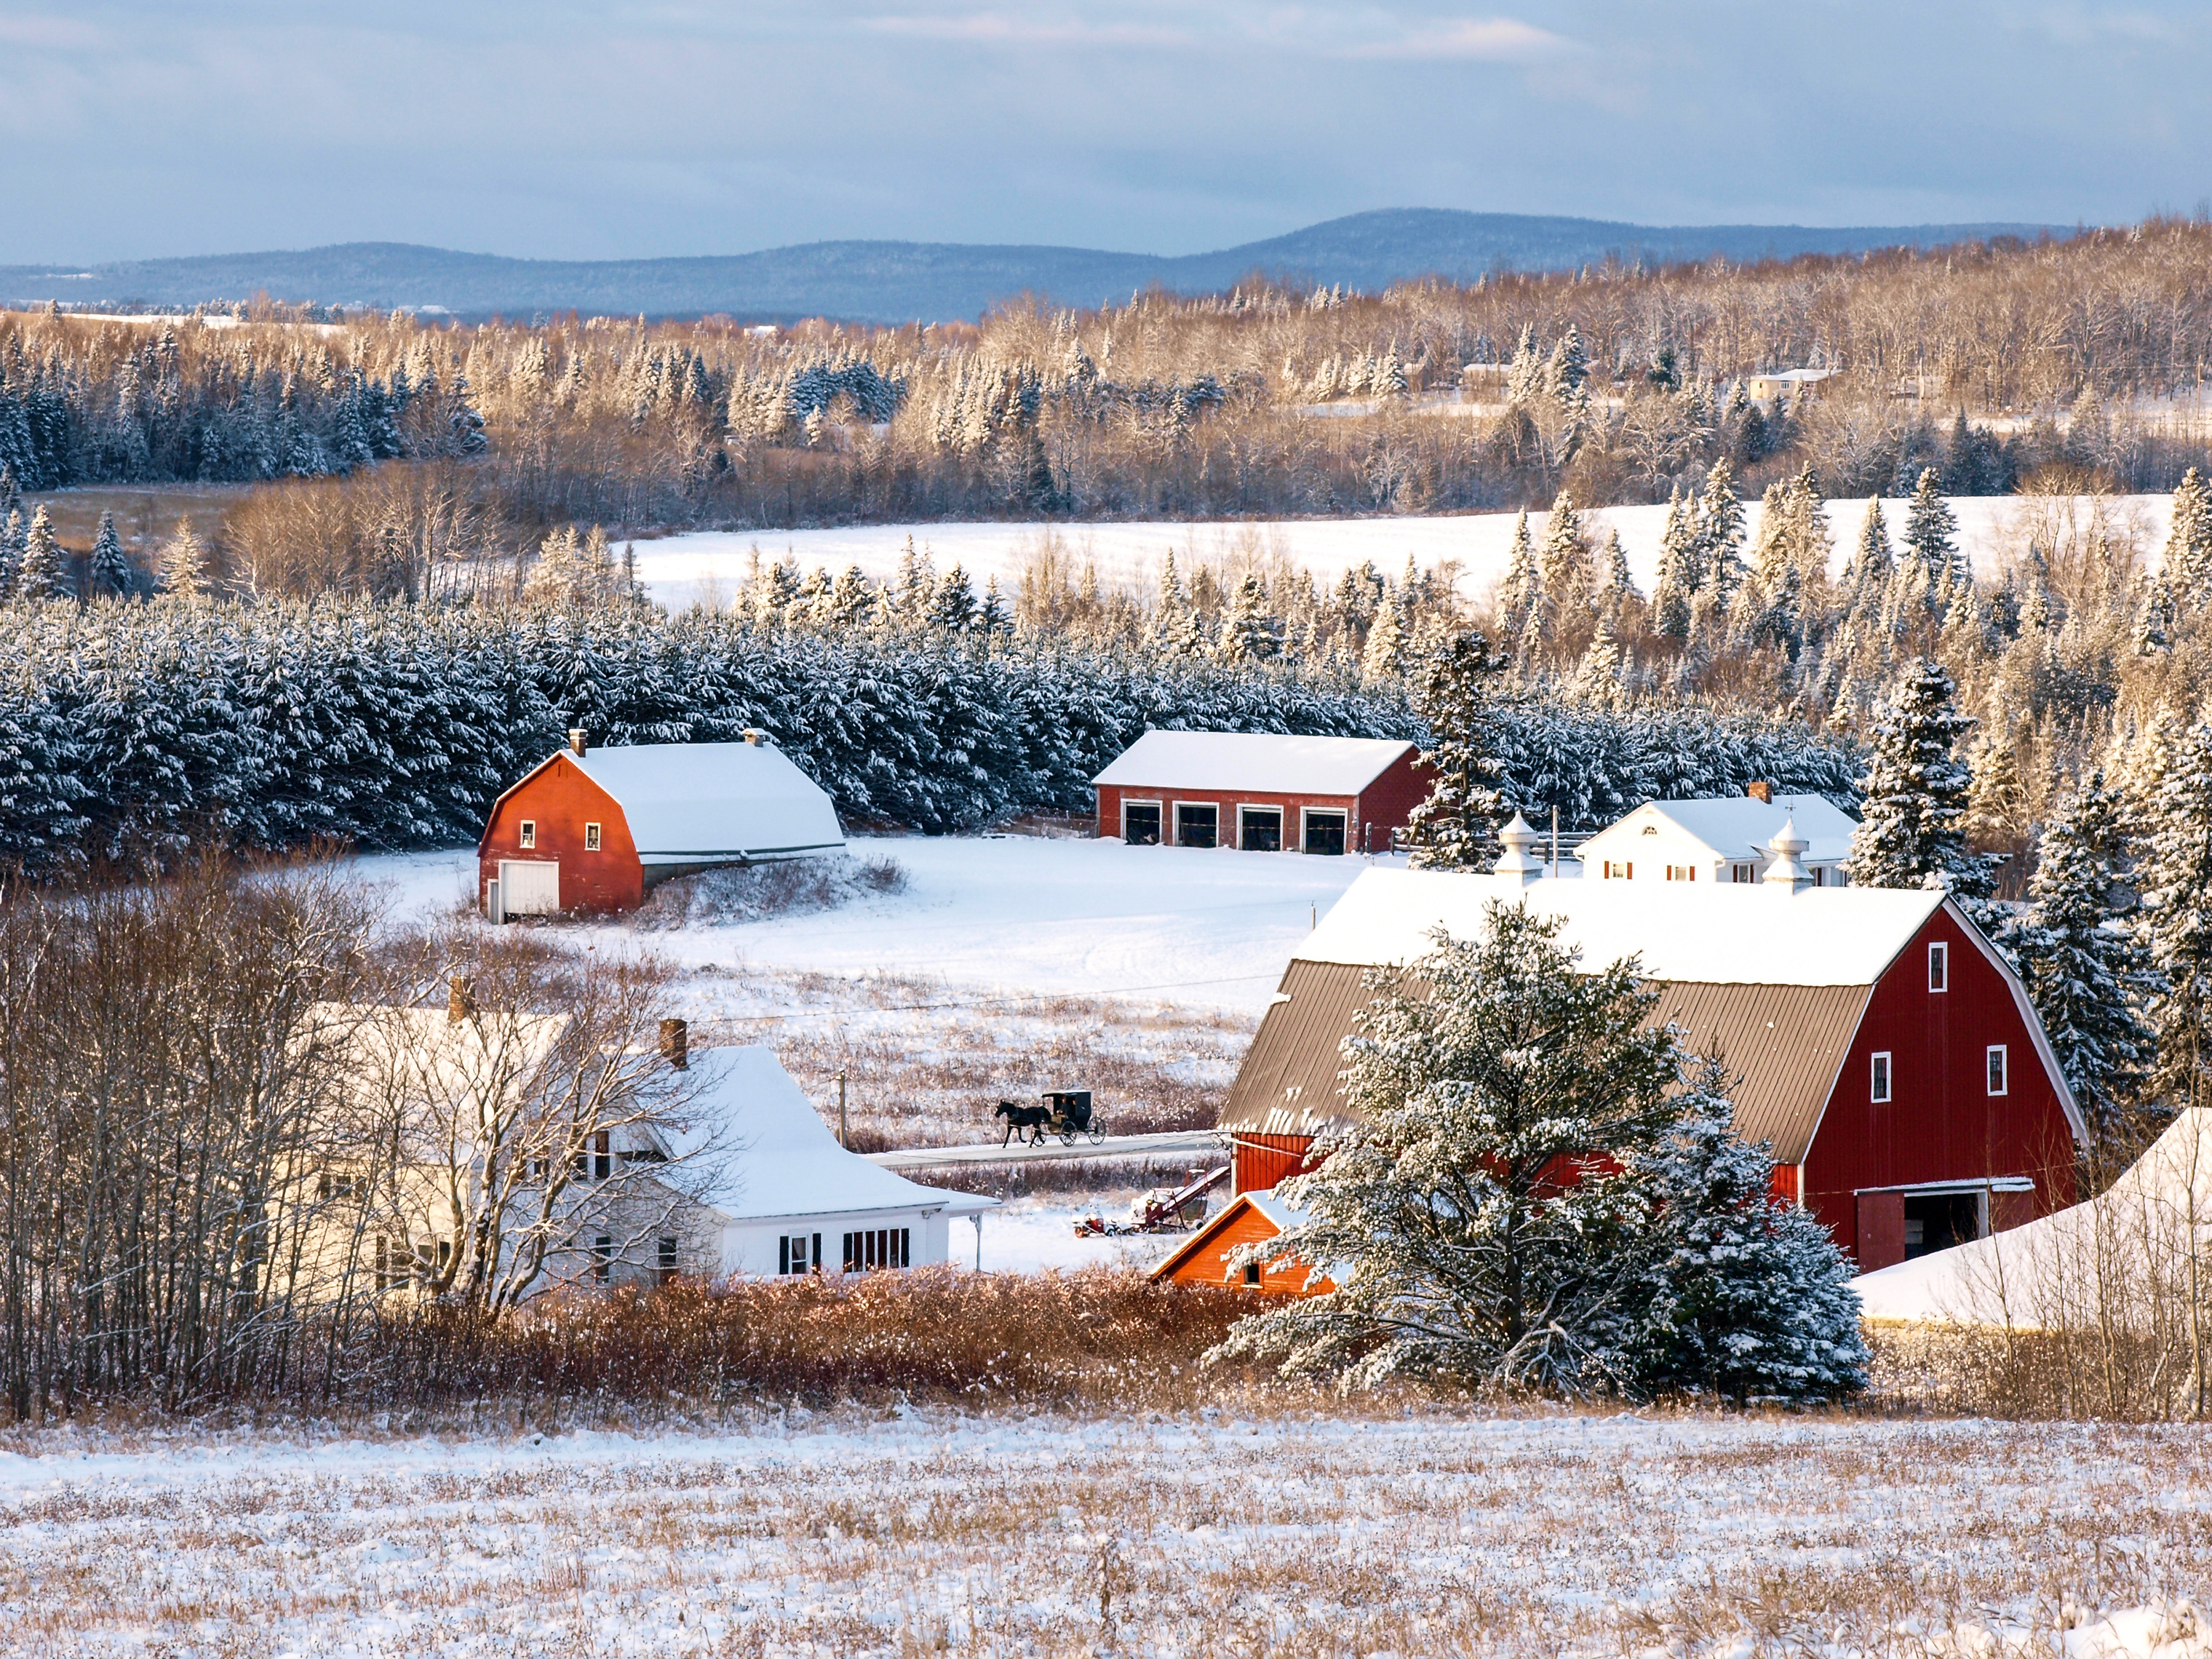 https://s3.amazonaws.com/MOT-Data/2015-enews-dec/winter-barn.jpg?utm_source=December+2015+E-news&utm_campaign=2015_12_14+Winter+Happenings&utm_medium=email